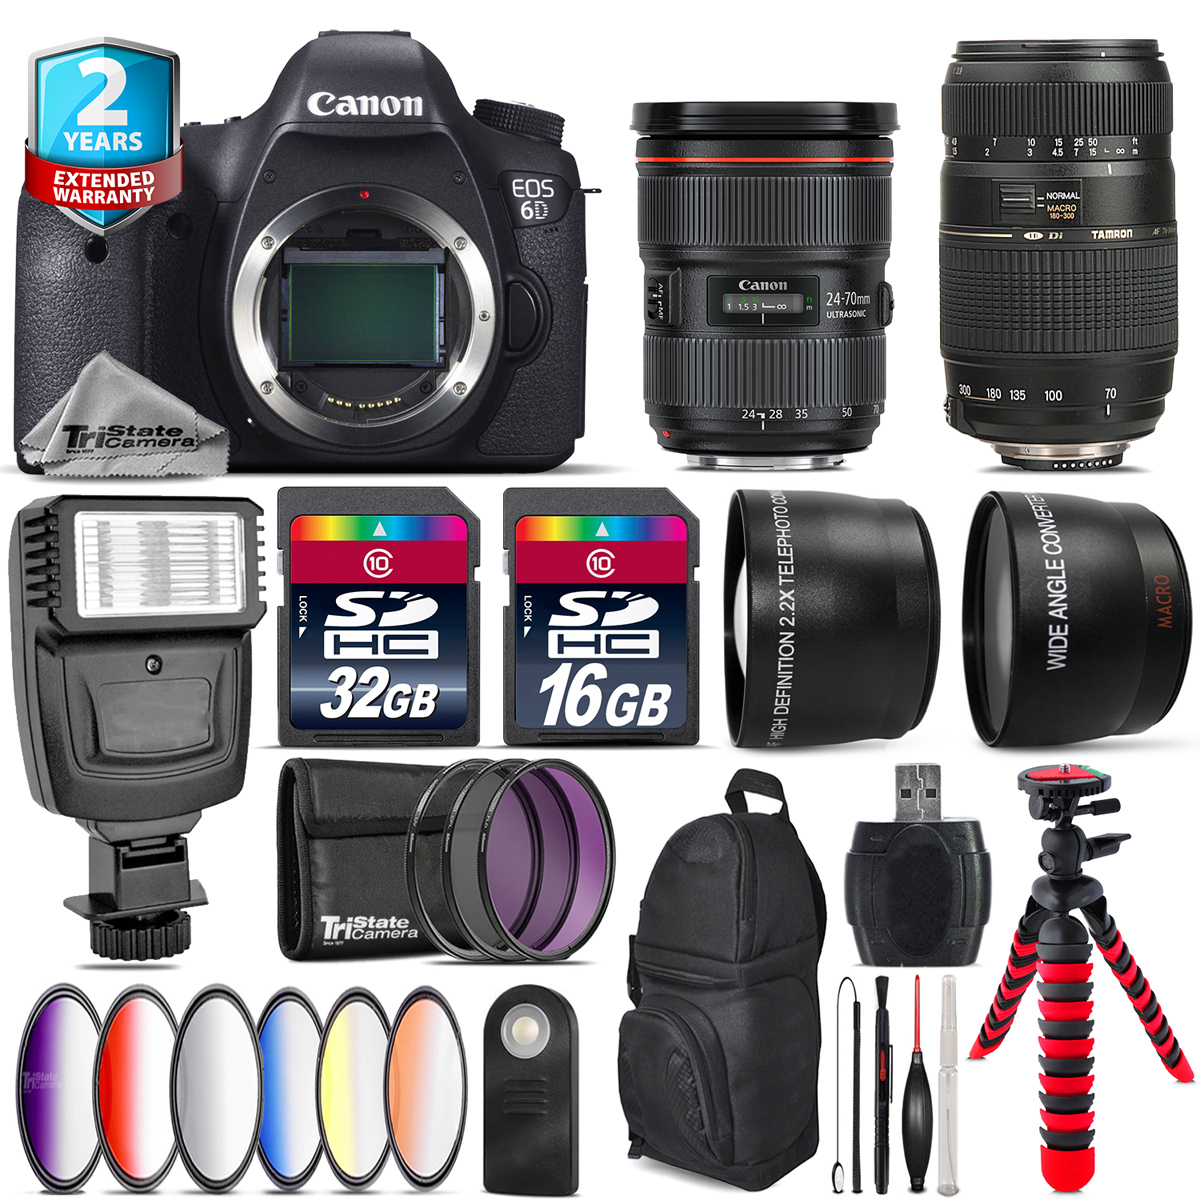 Canon EOS 6D Camera + 24-70mm 2.8L II + Tamron 70-300mm + Slave Flash -48GB Kit by Tri StateCamera